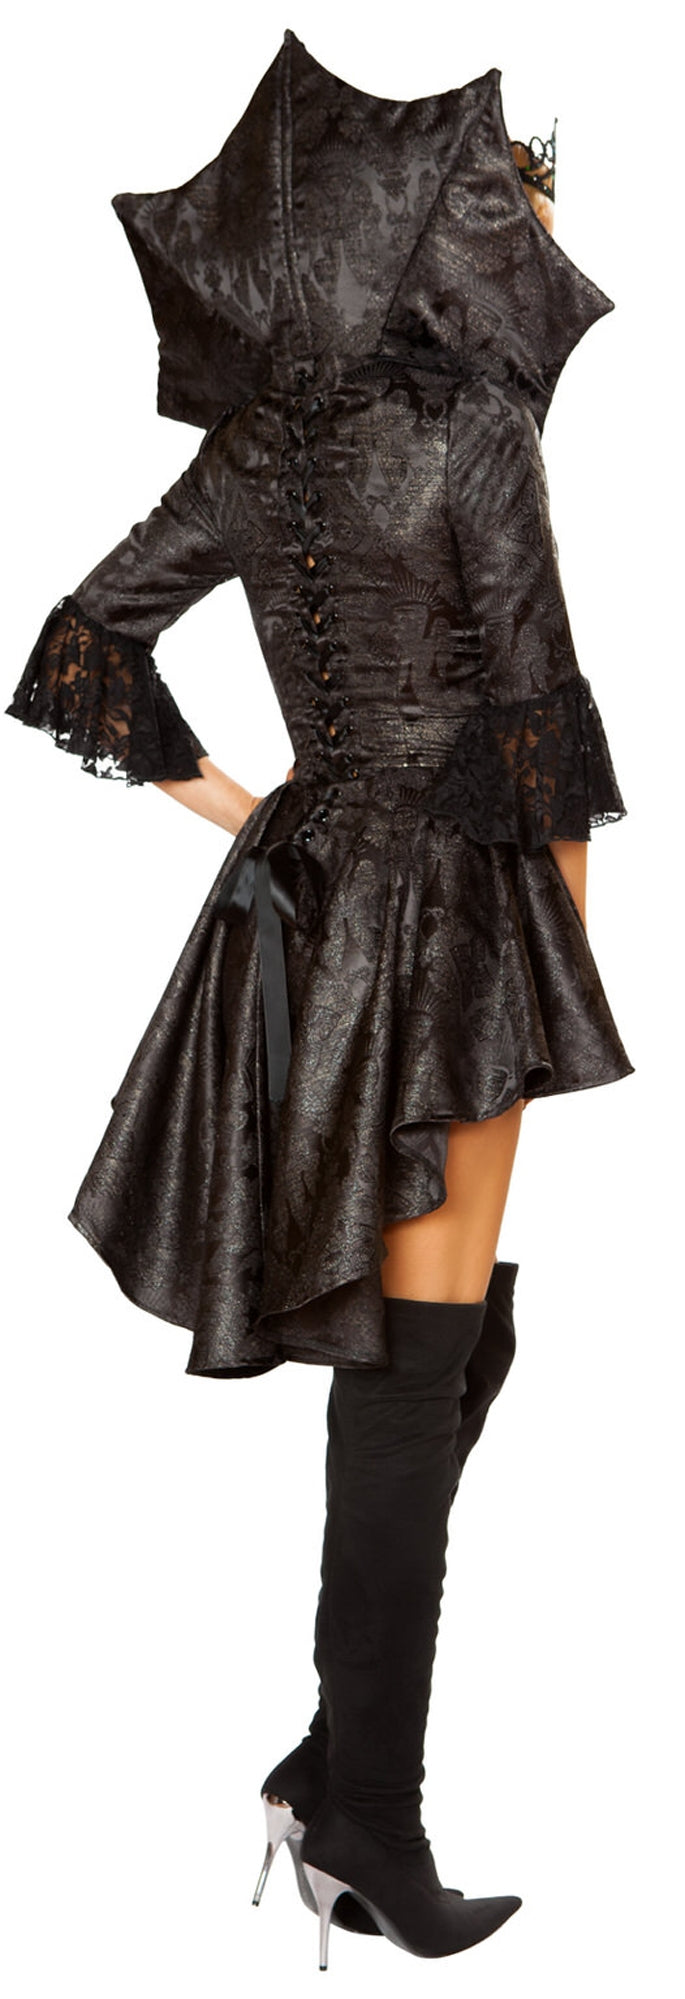 RM-4785 Queen of darkness costume back